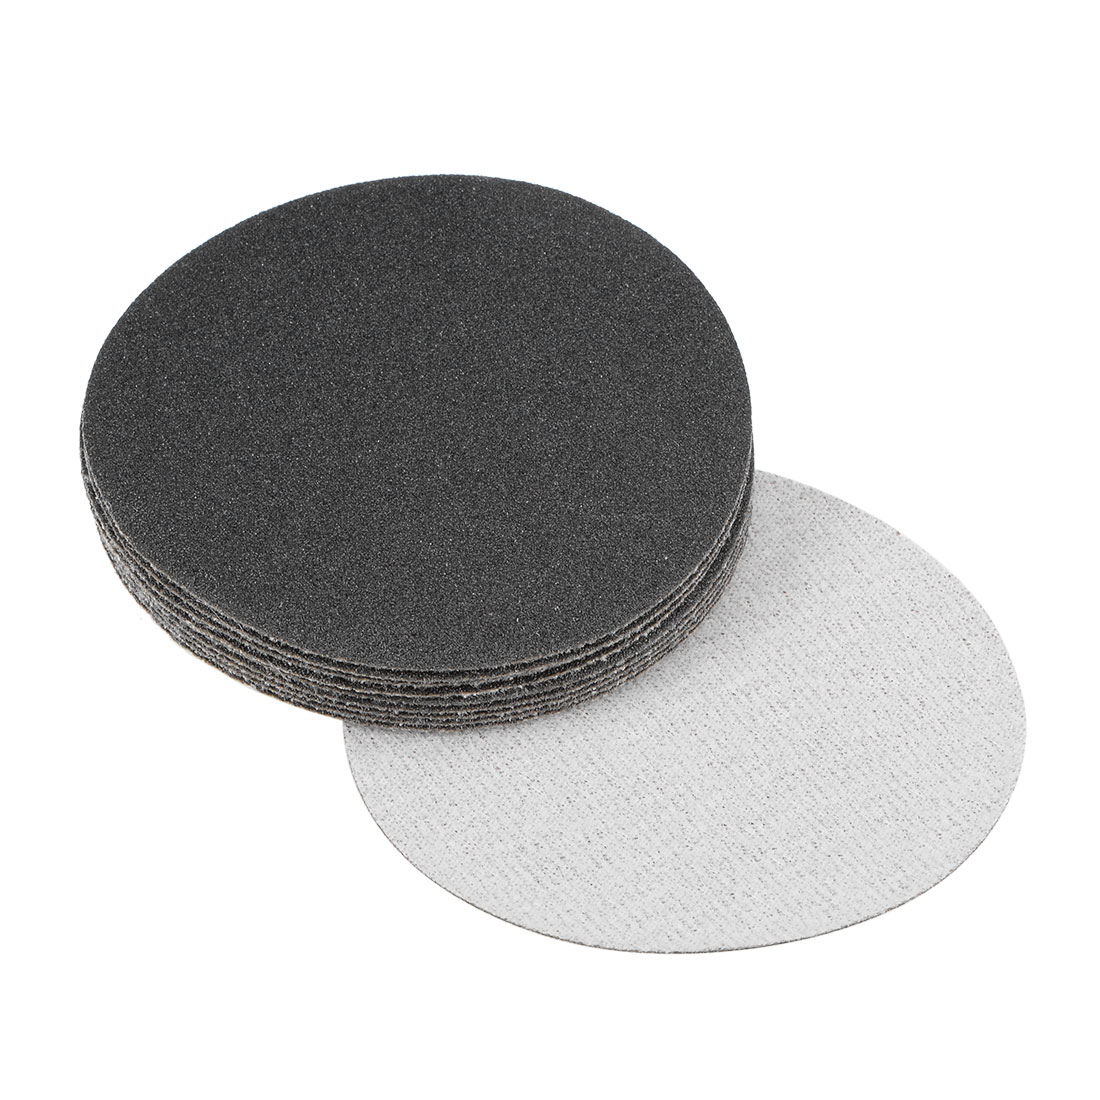 3 inch Wet Dry Discs 120 Grit Hook and Loop Sanding Disc Silicon Carbide 10pcs